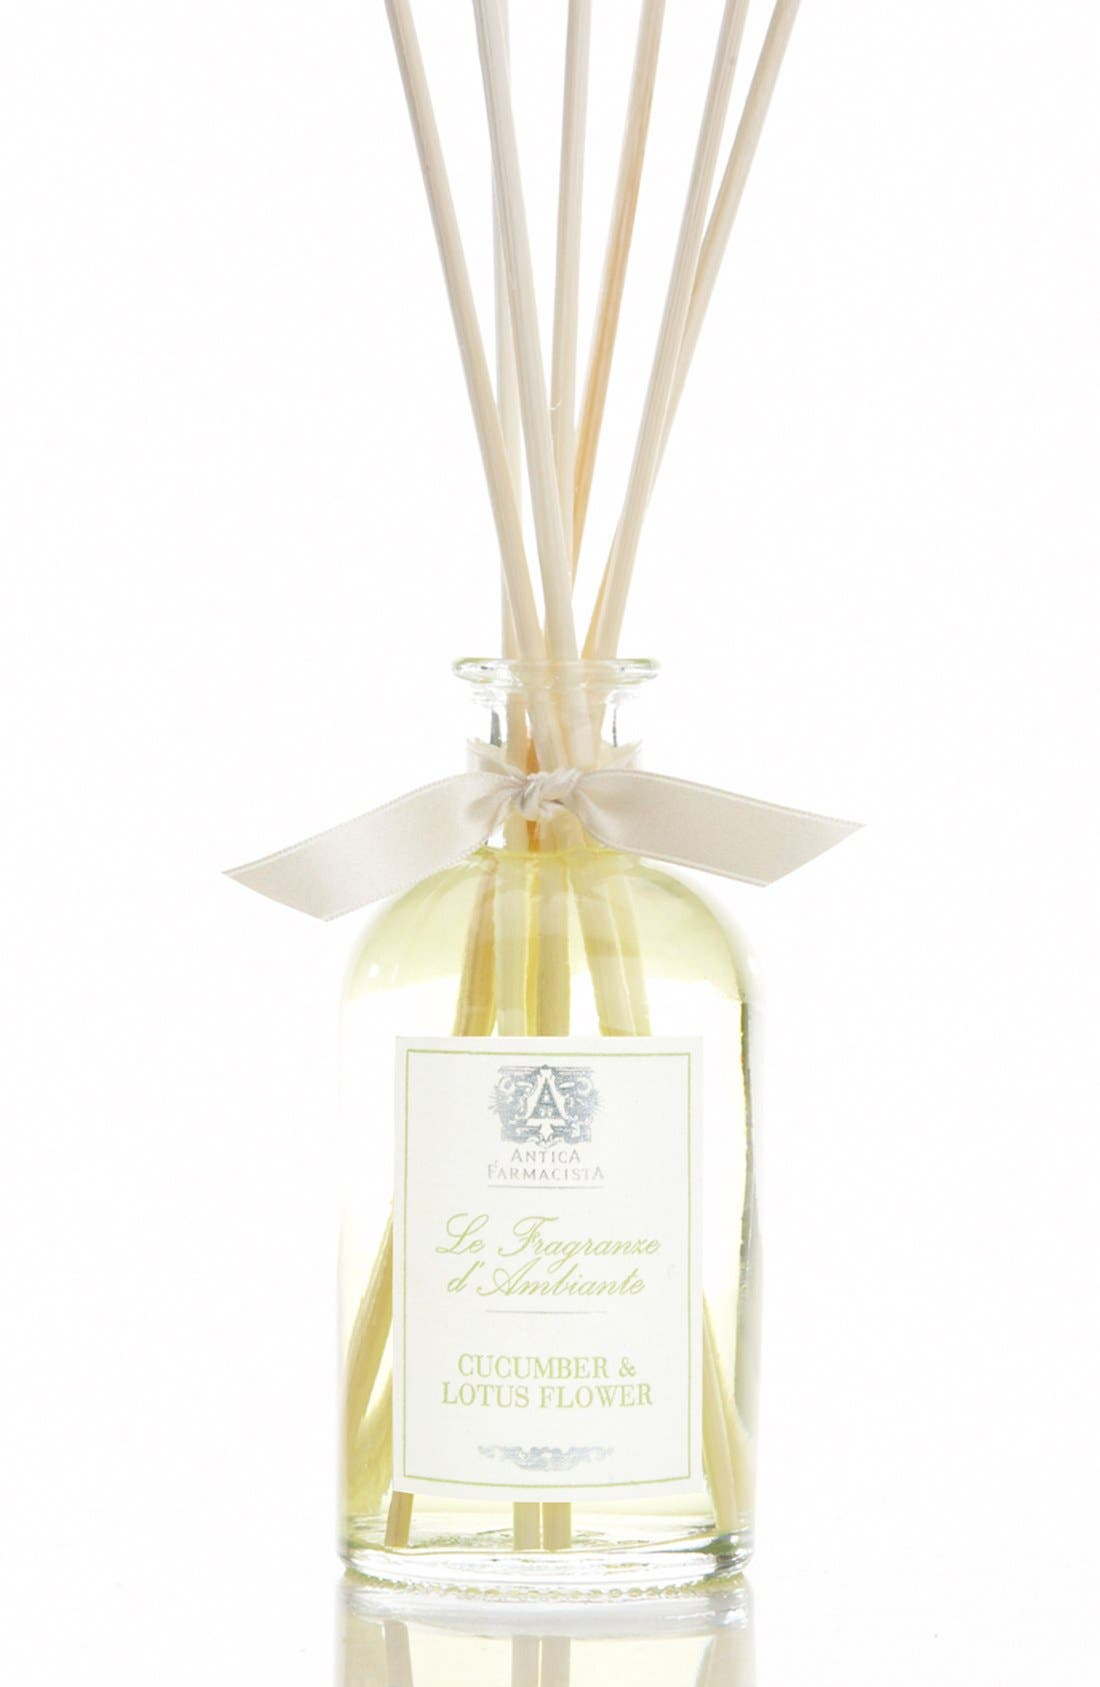 Antica Farmacista Cucumber & Lotus Flower Home Ambiance Perfume